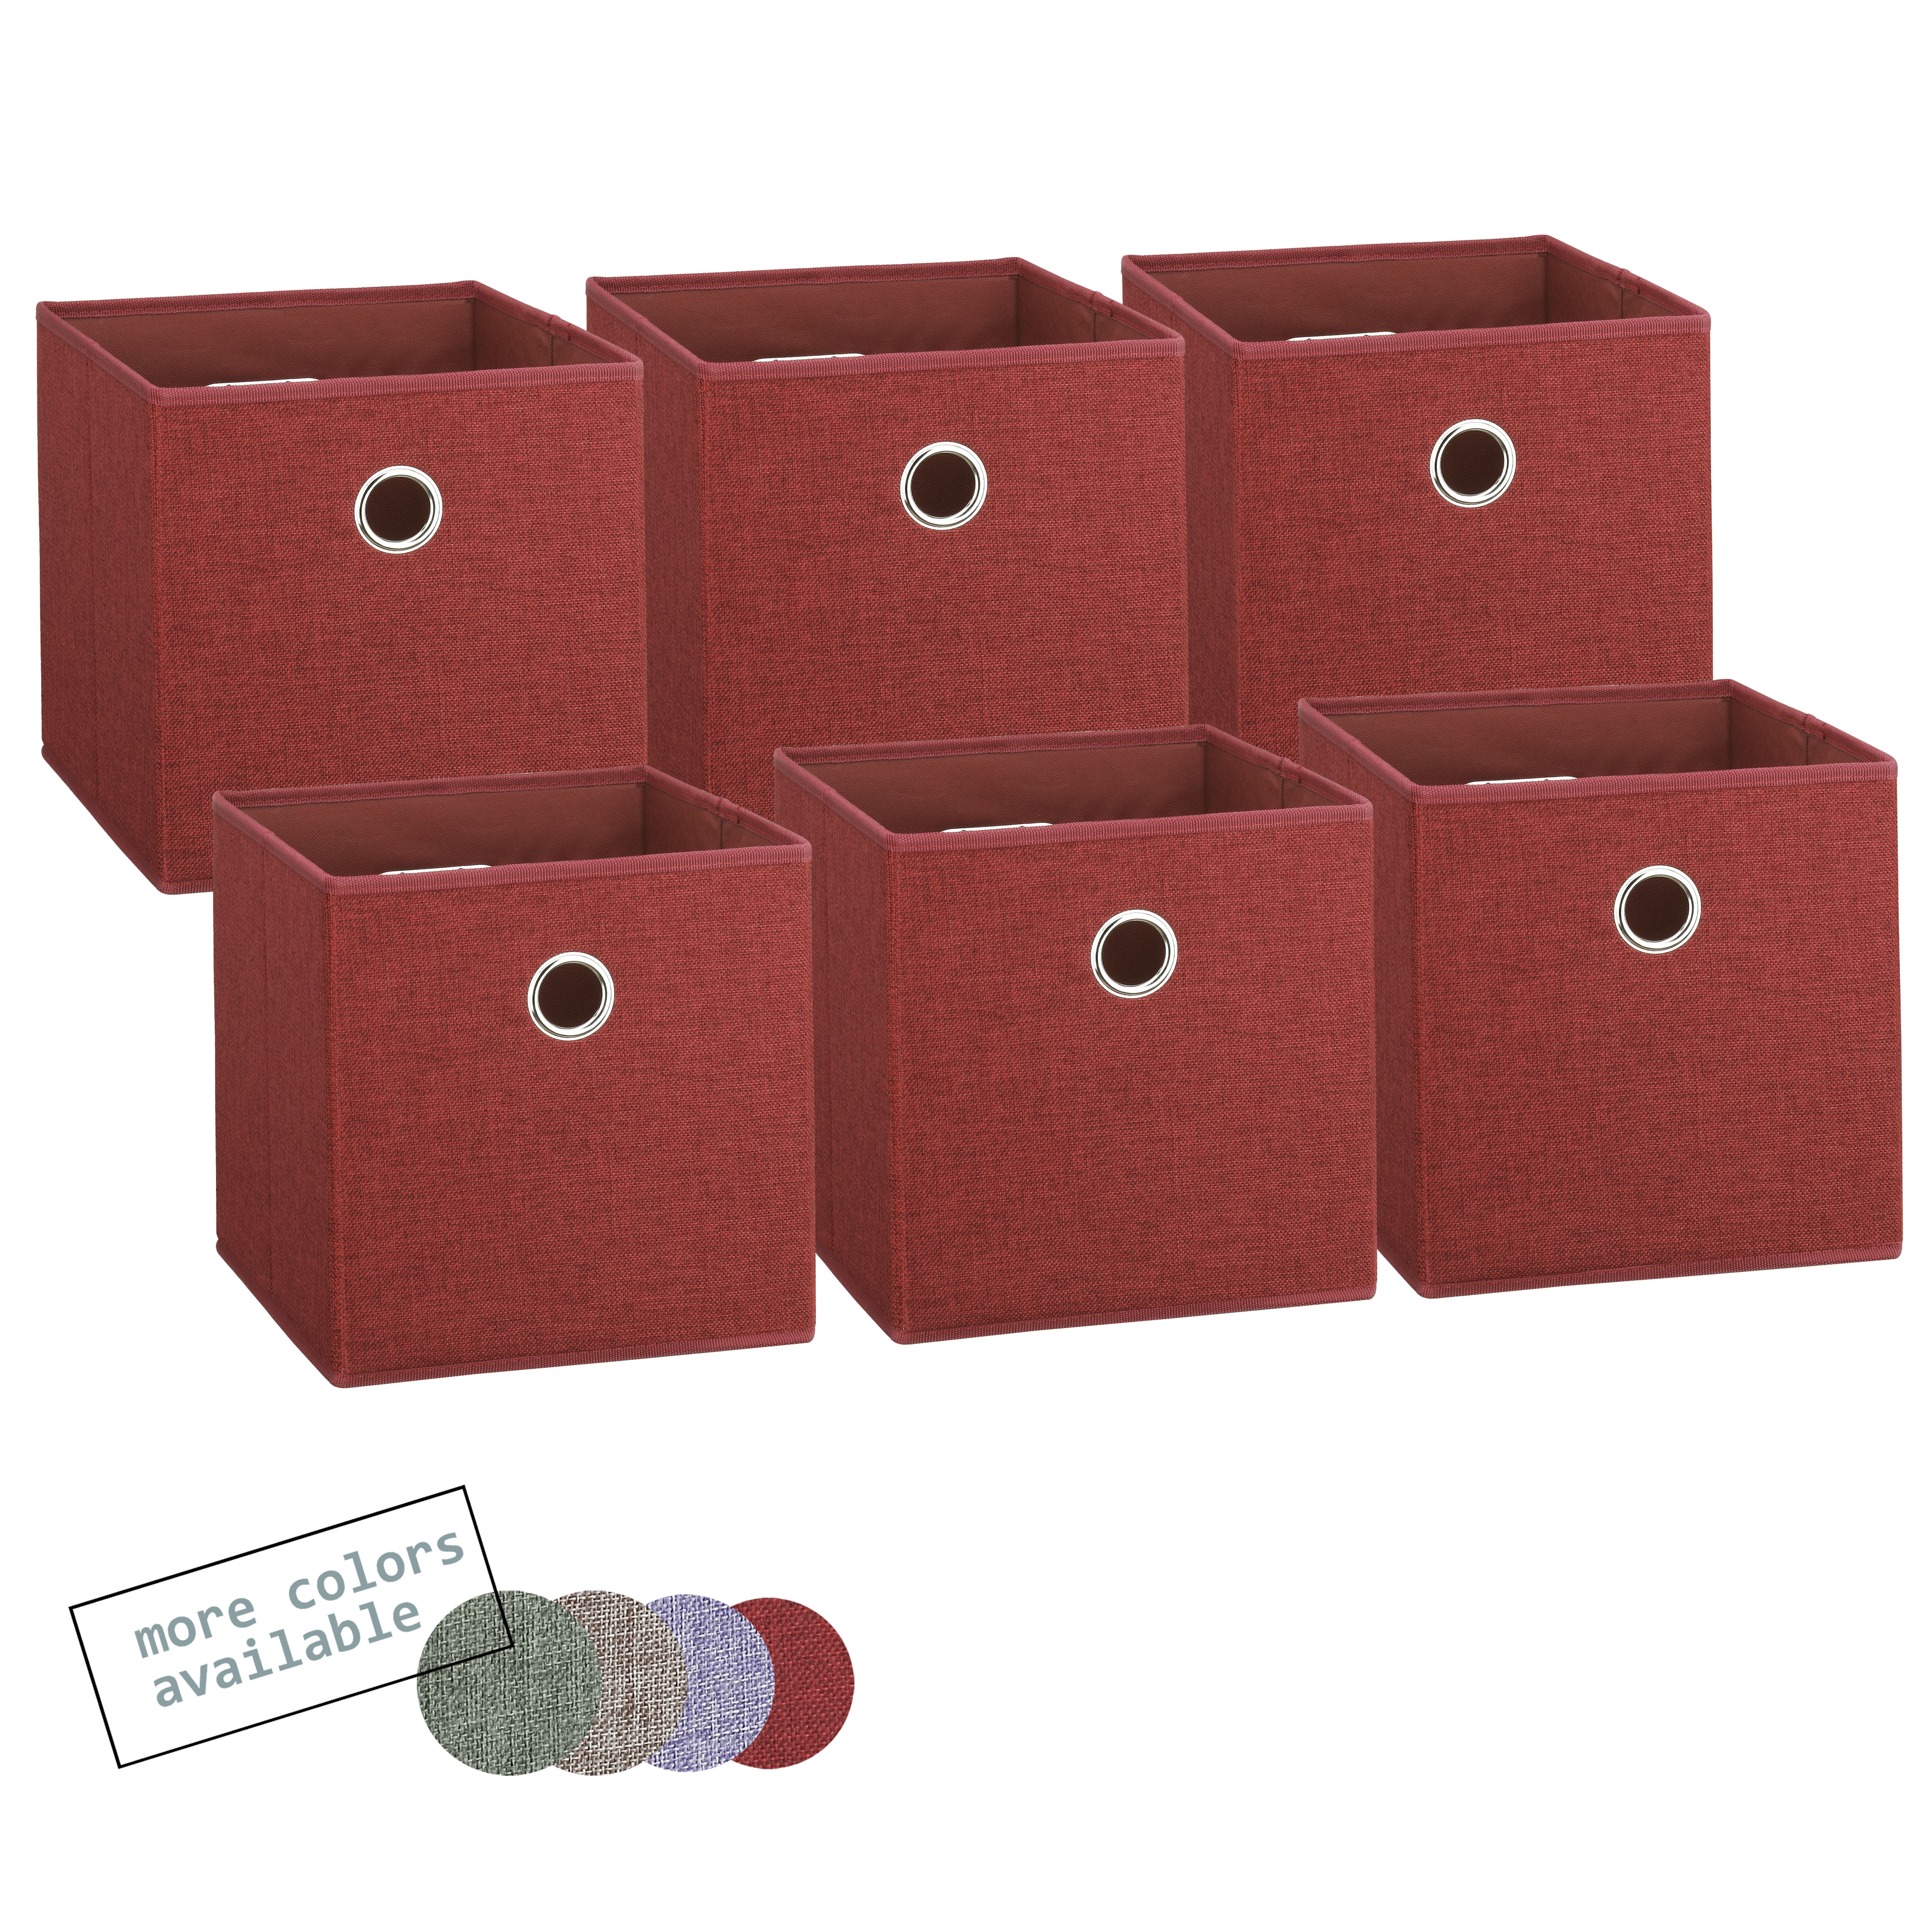 Foldable fabric storage cubes red